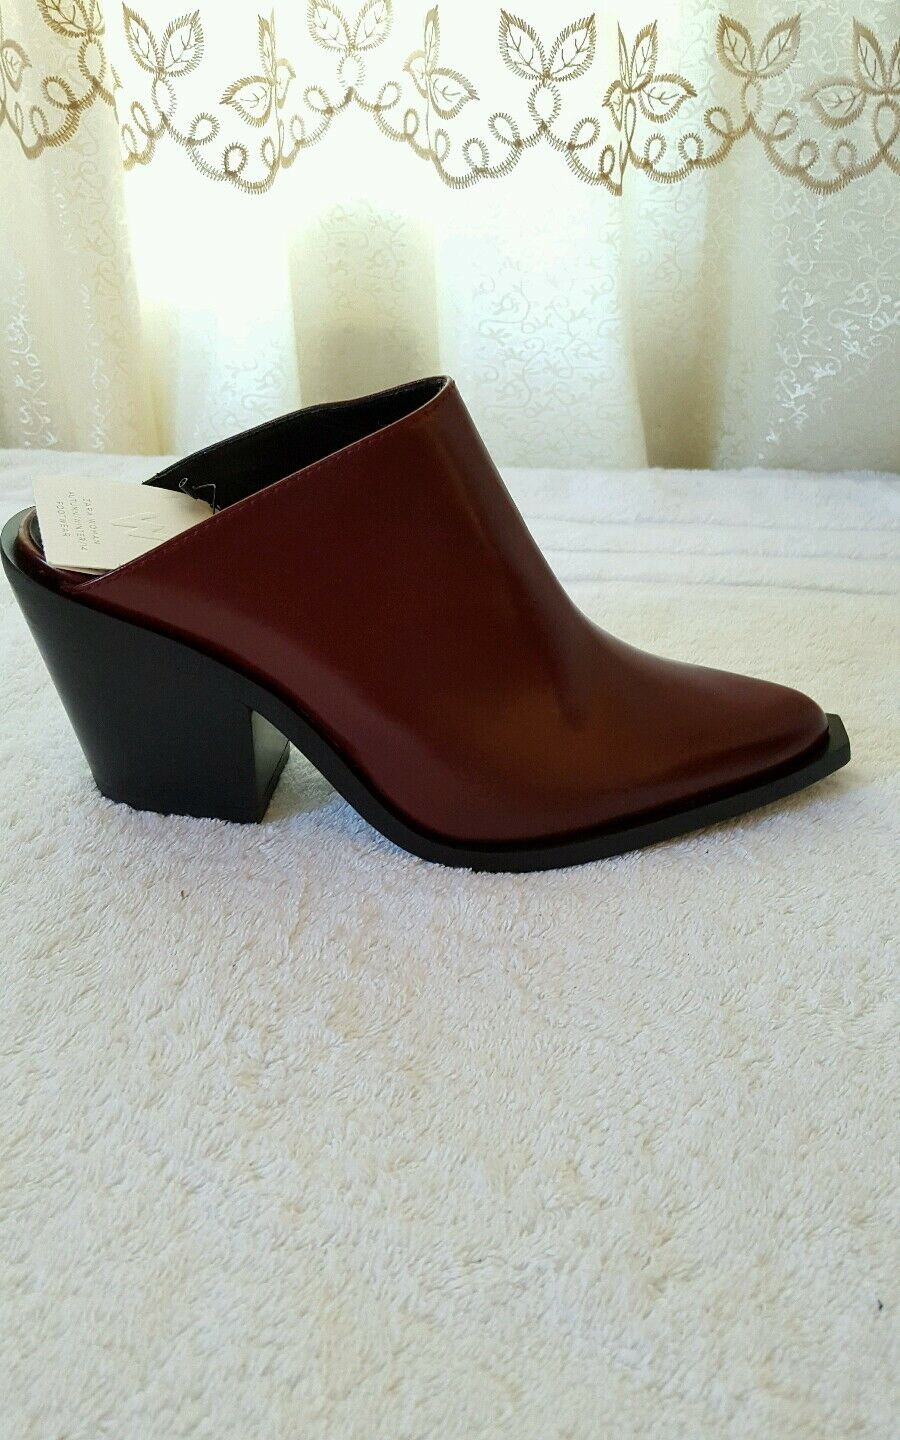 ZARA LEATHER HIGH HEELED  SLINGBACK avvioIES REF.5101 301 EUR 38 US 7.5 NWT